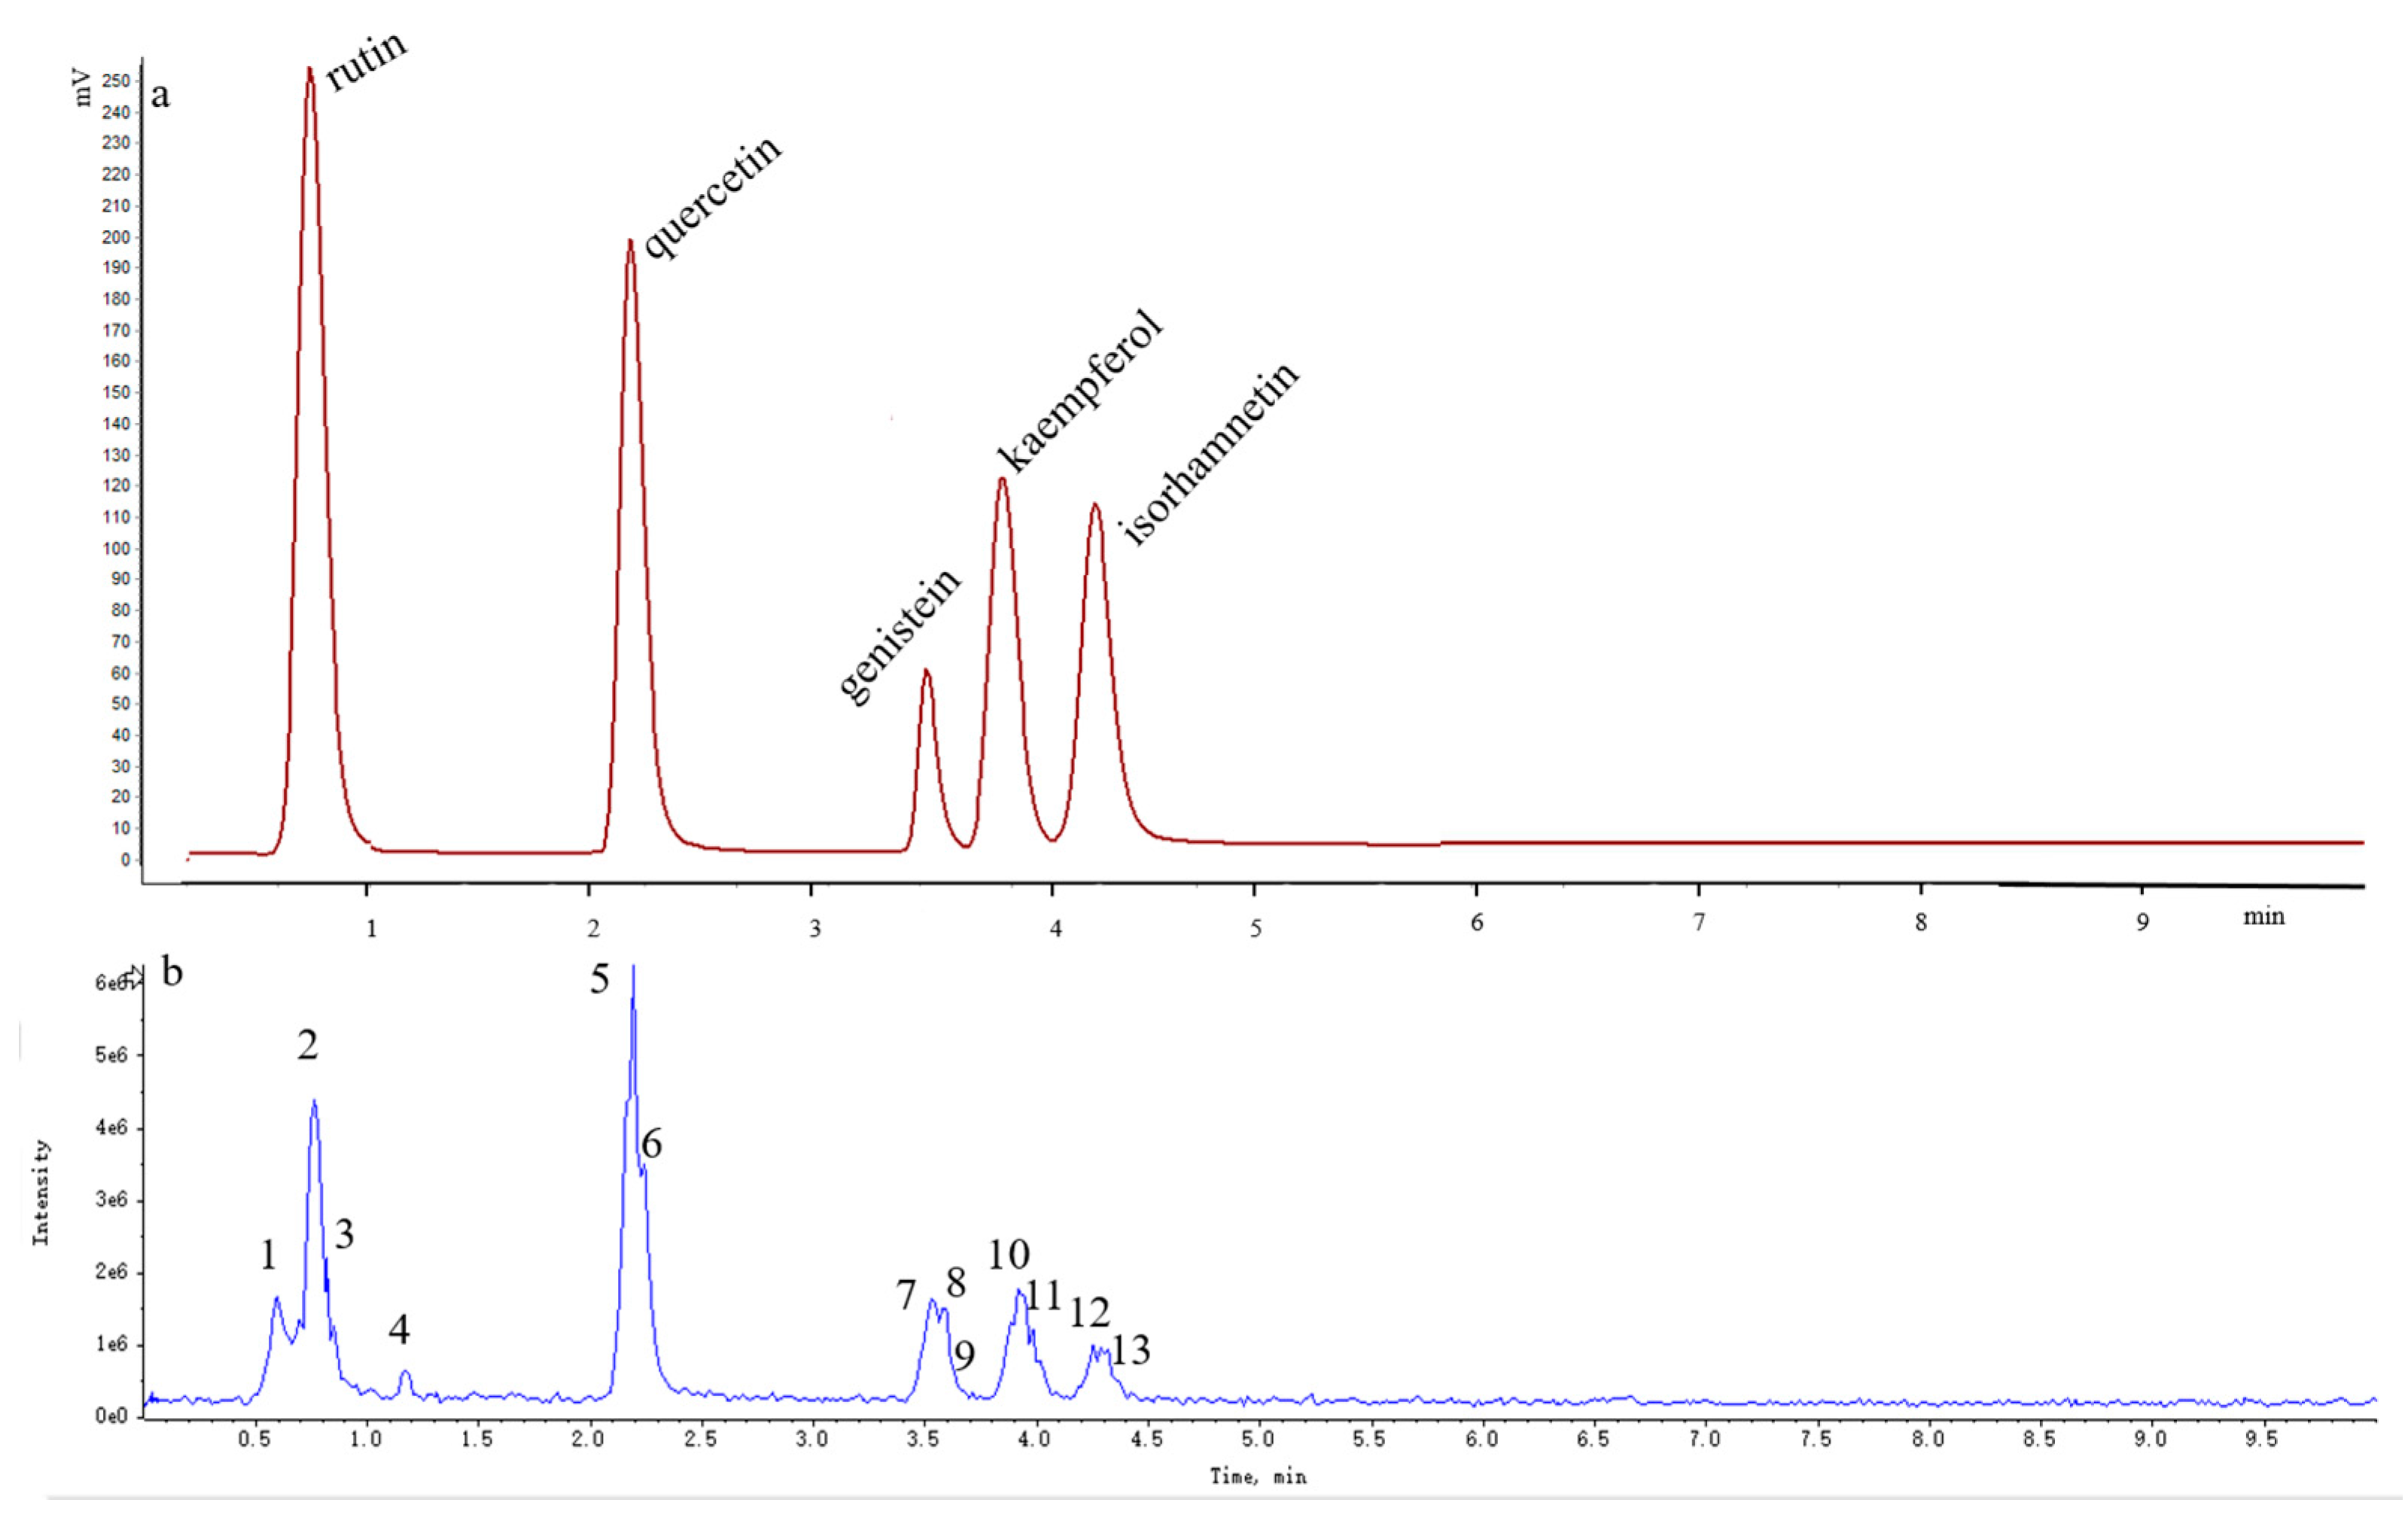 frequency response of r l and c components lab report The dc steady state response of rl and rc circuits are essential opposite of  each other:  capacitance and frequency will be investigated, including a plot of  capacitive reactance versus  l, and c components will yield a complex  impedance with a phase angle  from step 4 and the phasor plot with the  technical report.